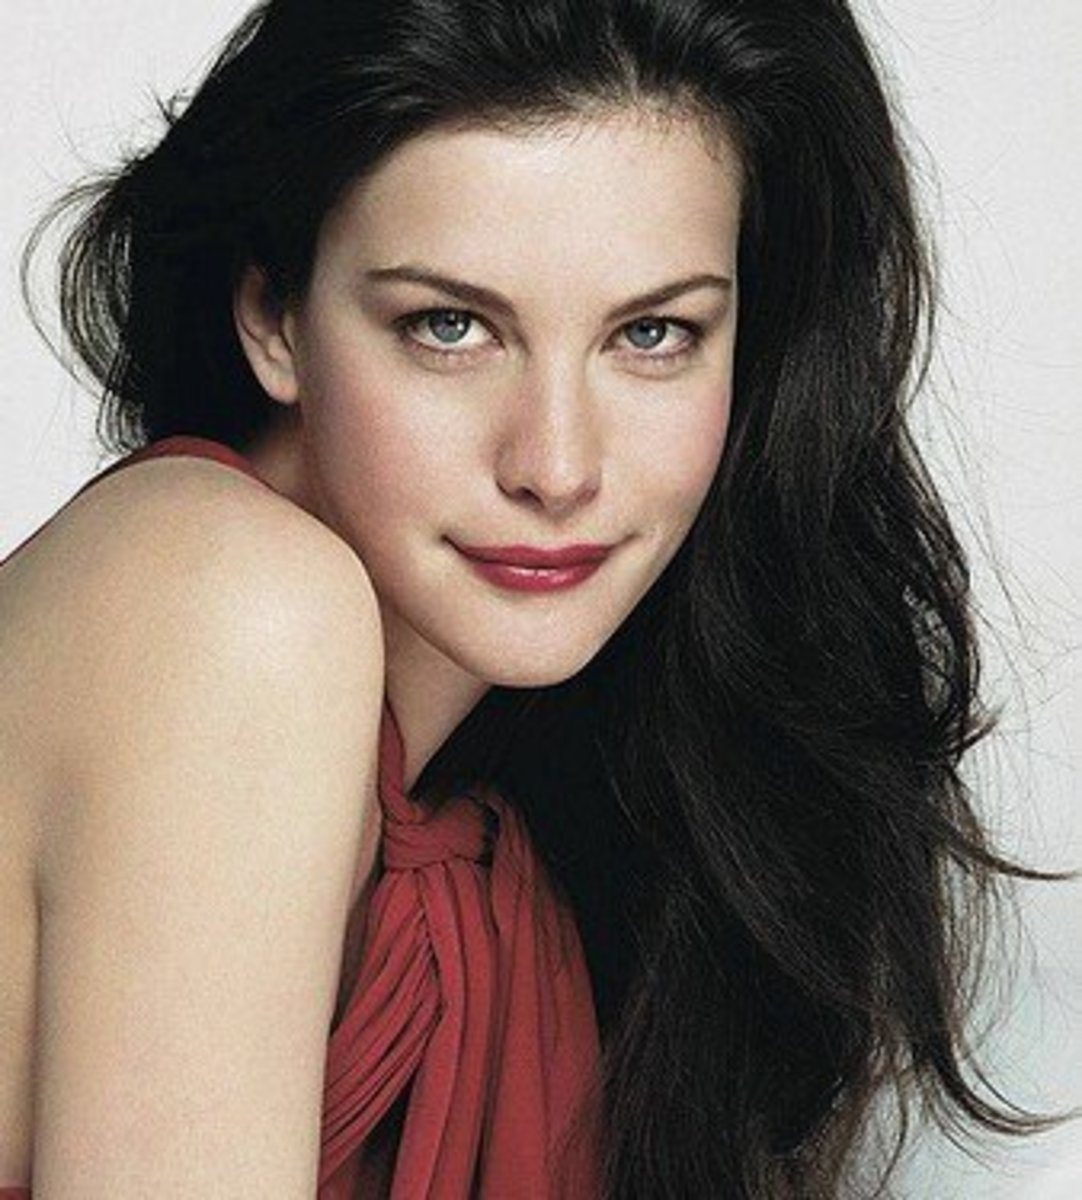 Liv Tyler: Woman with black hair and blue eyes